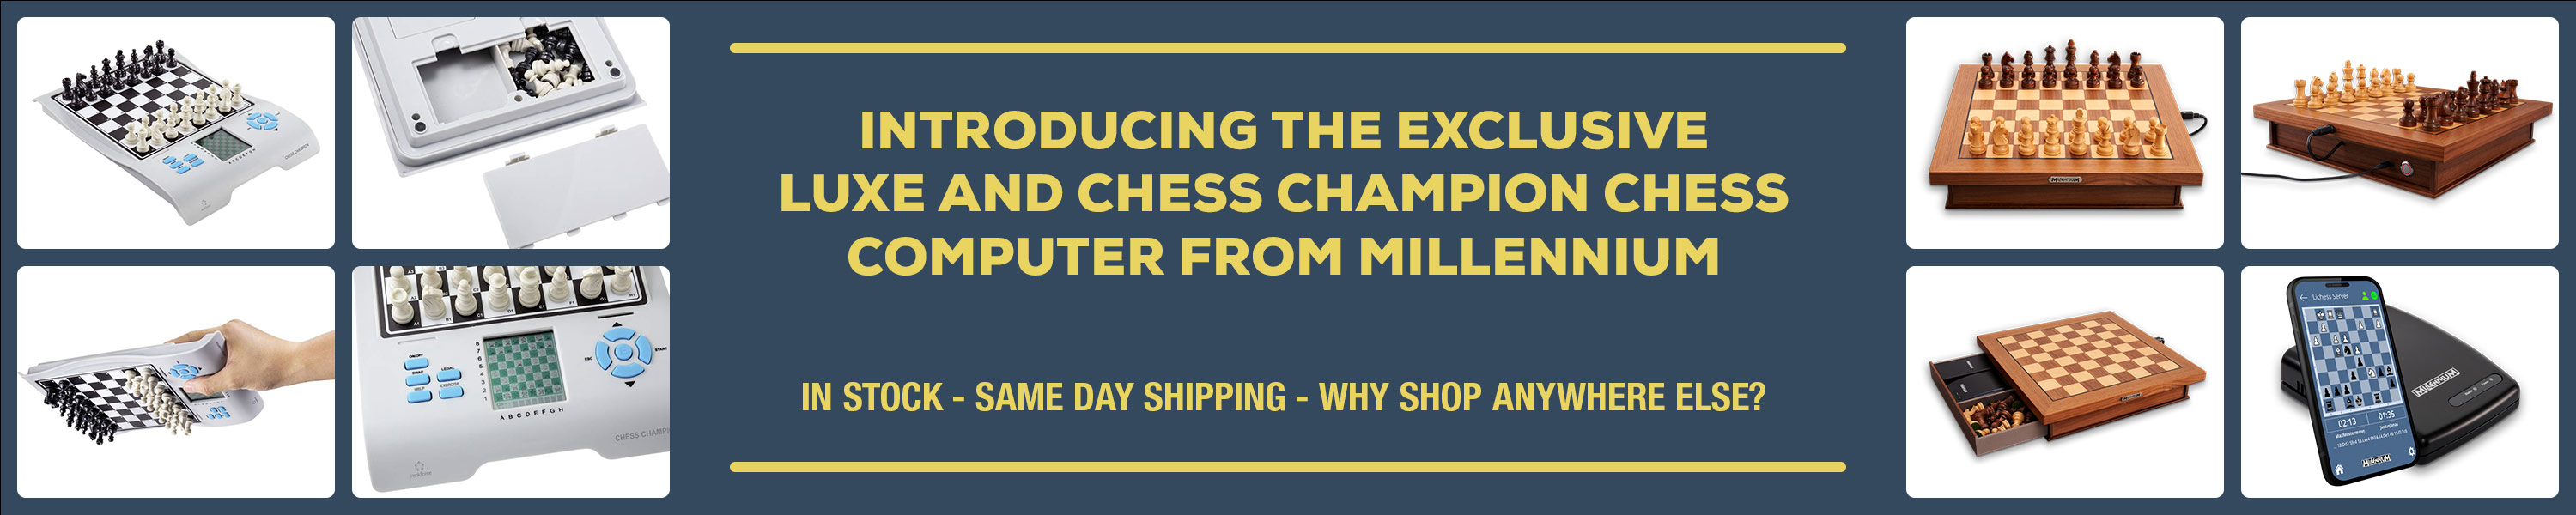 Introducing the Exclusive Luxe and Chess Champion Chess Computer from Millennium